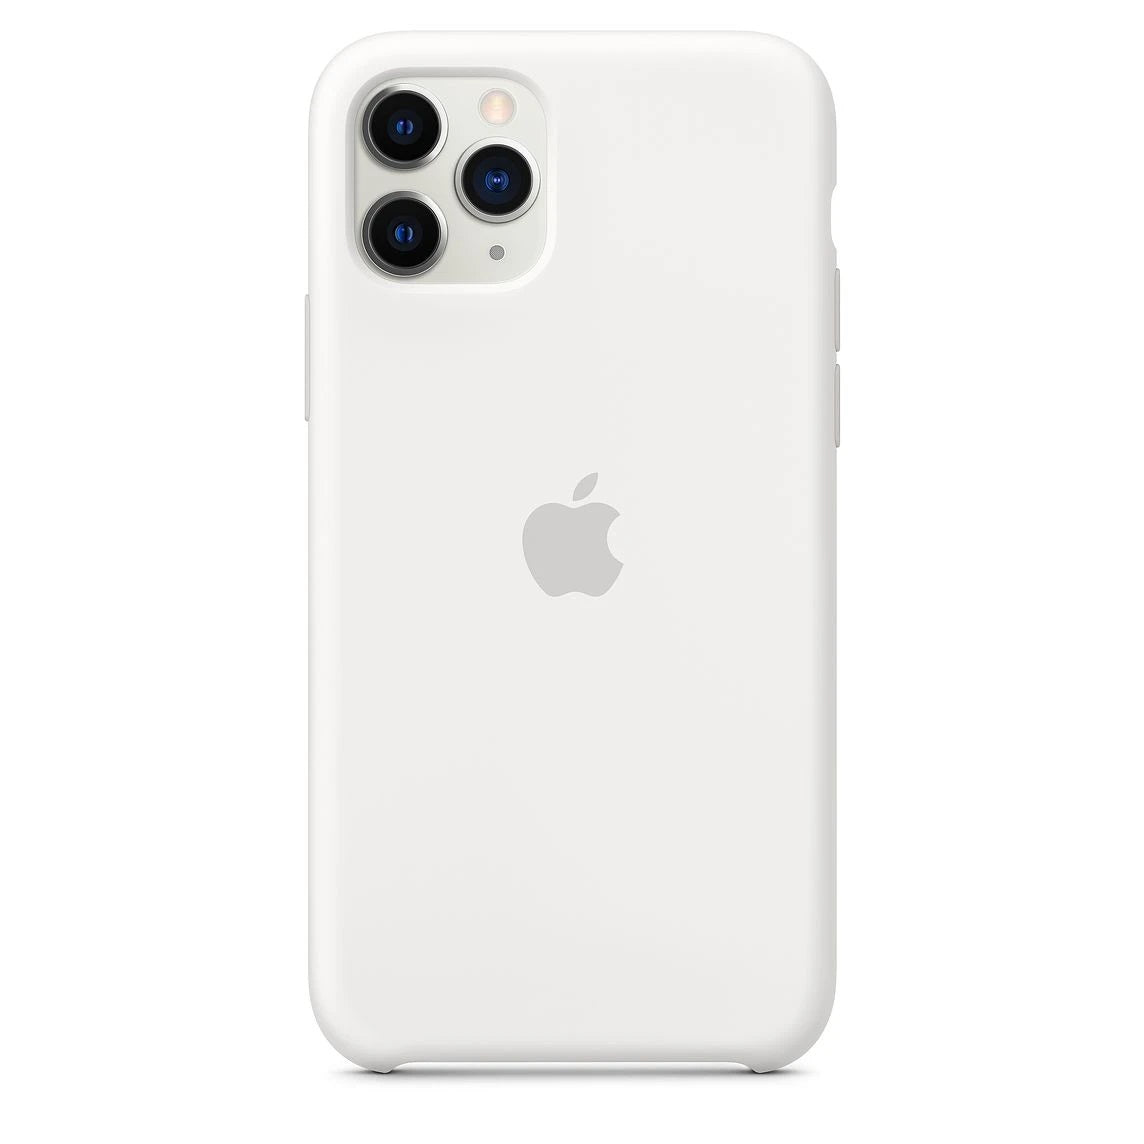 Silicon Case For iPhone 11 Pro Max - White - Mobilegadgets360